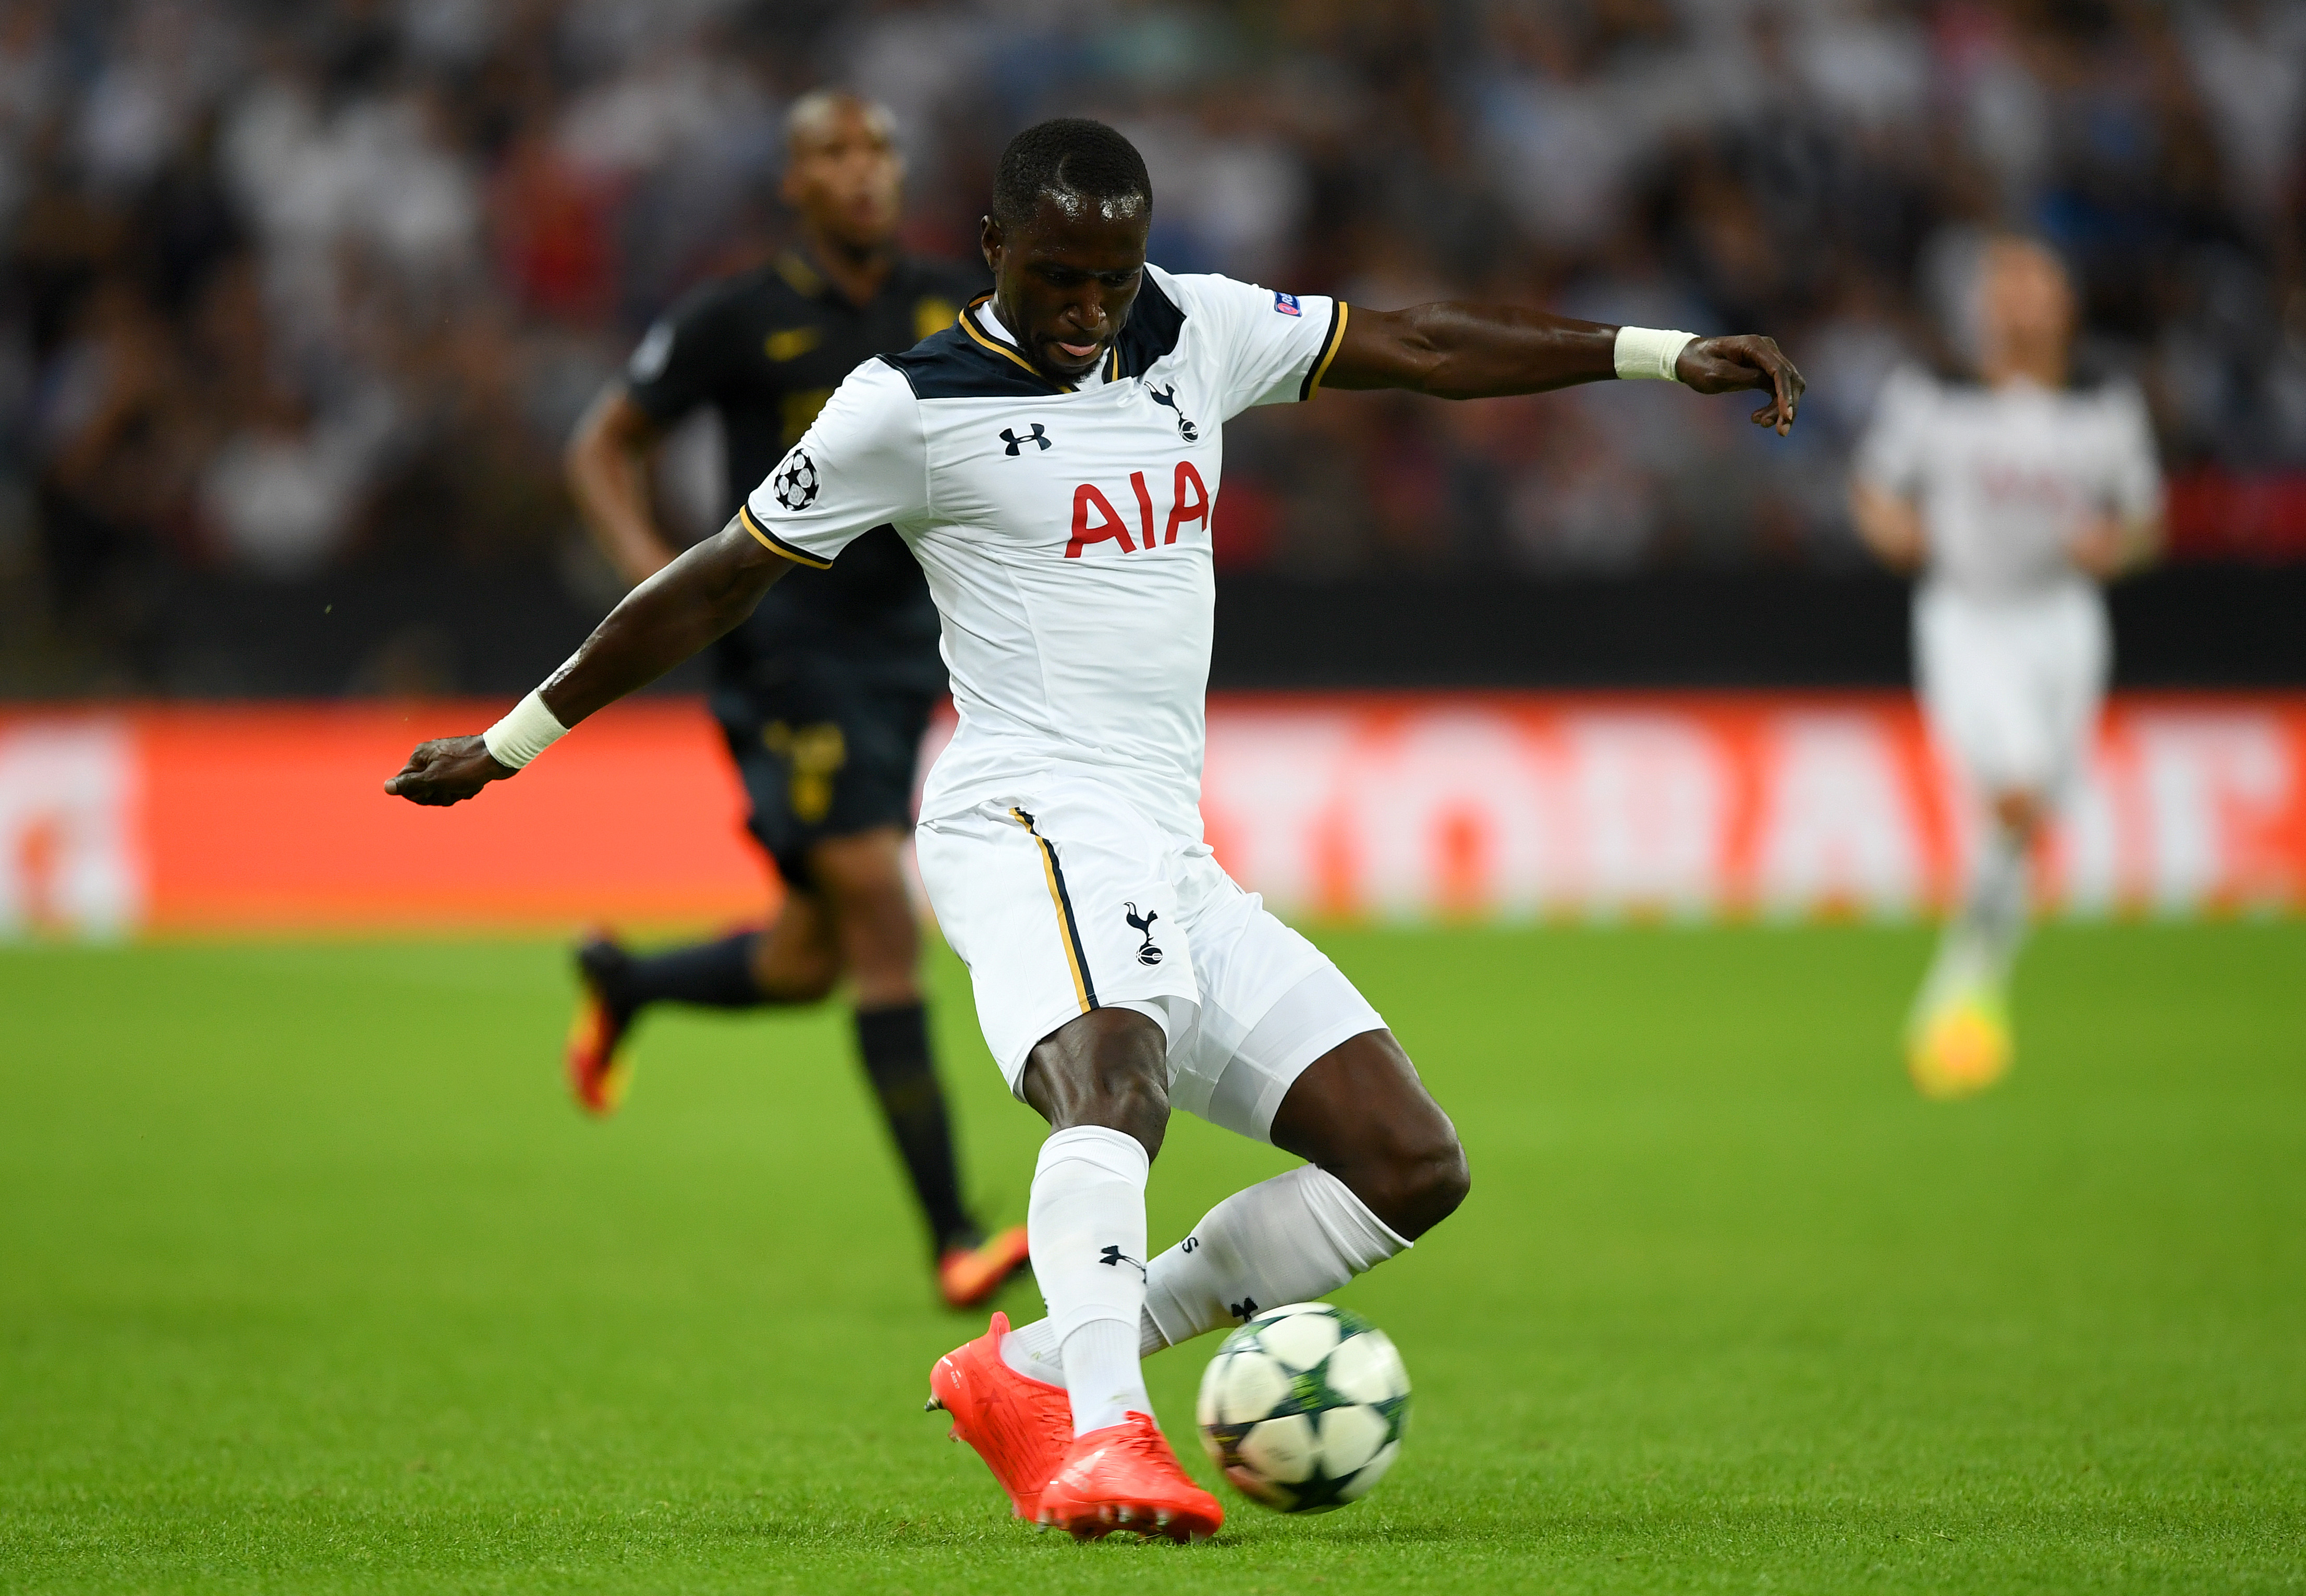 Tottenham signing Moussa Sissoko is a world-beater, claims former Spurs boss Tim Sherwood